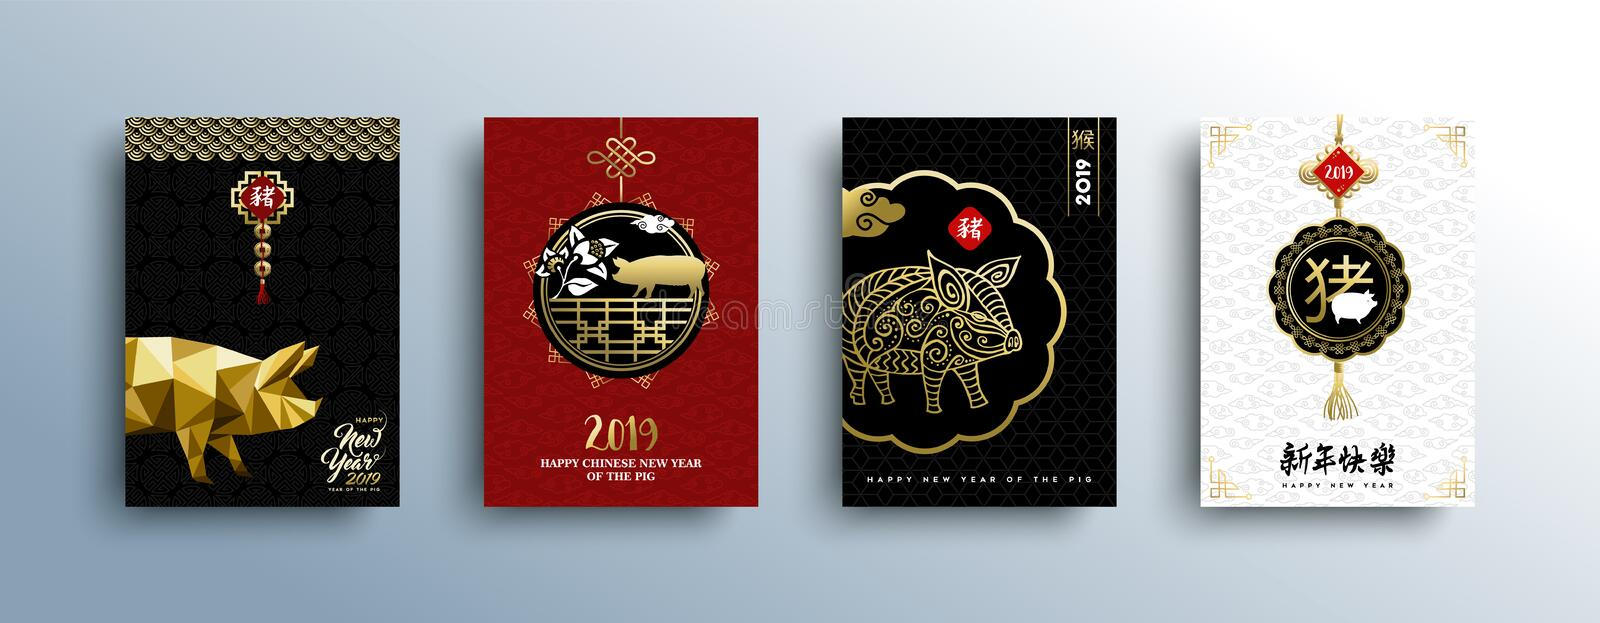 Chinese New Year of the Pig 2019 gold hog card set. Chinese New Year 2019 greeting card set, asian style decoration of gold hog ornament on red background vector illustration